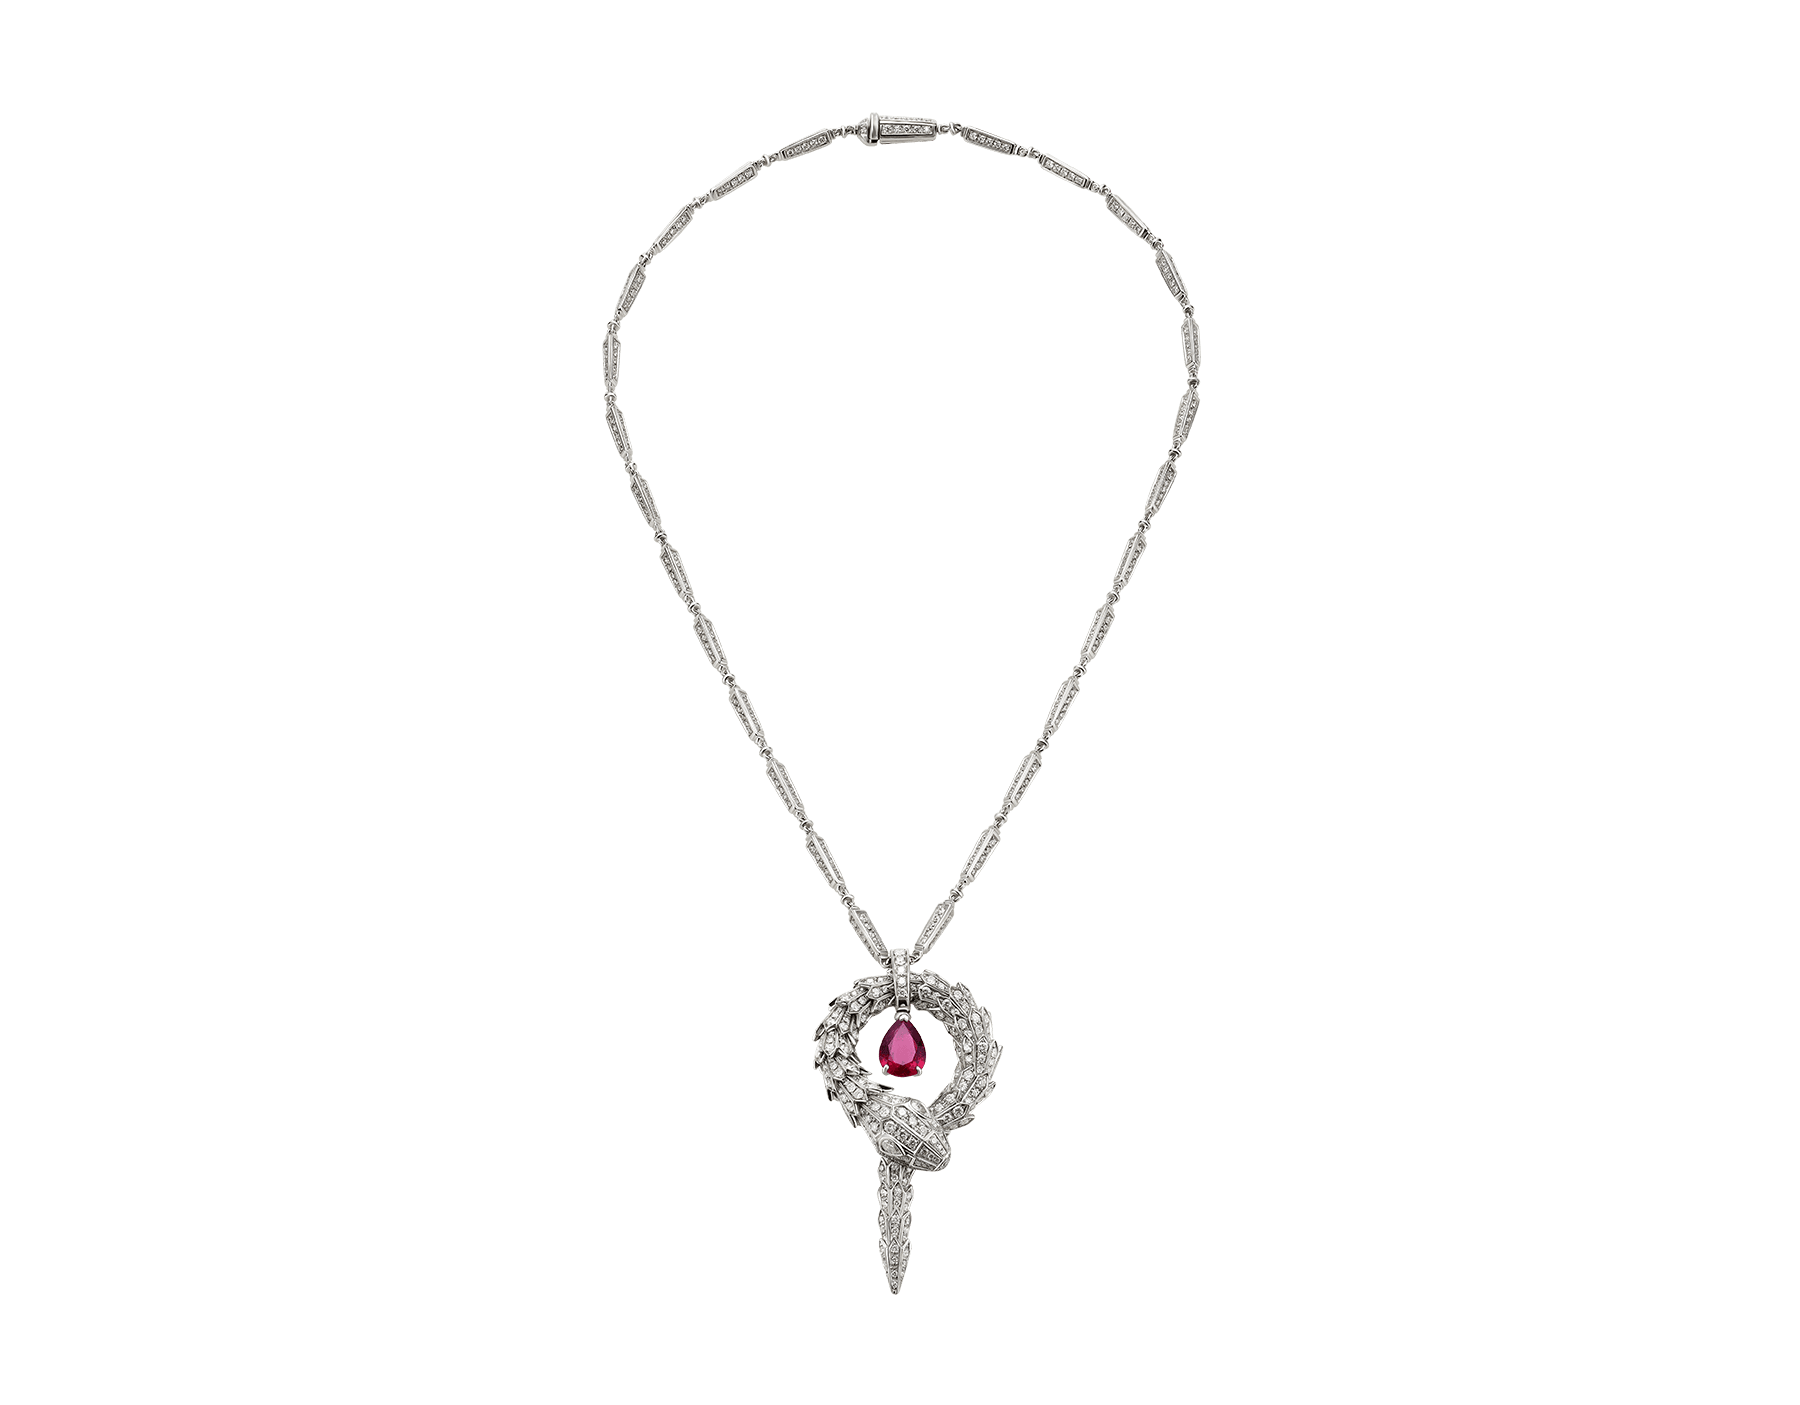 Serpenti small pendant in 18 kt white gold with rubellite (1.90 ct) and pavé diamonds (7.13 ct) 354086 image 1